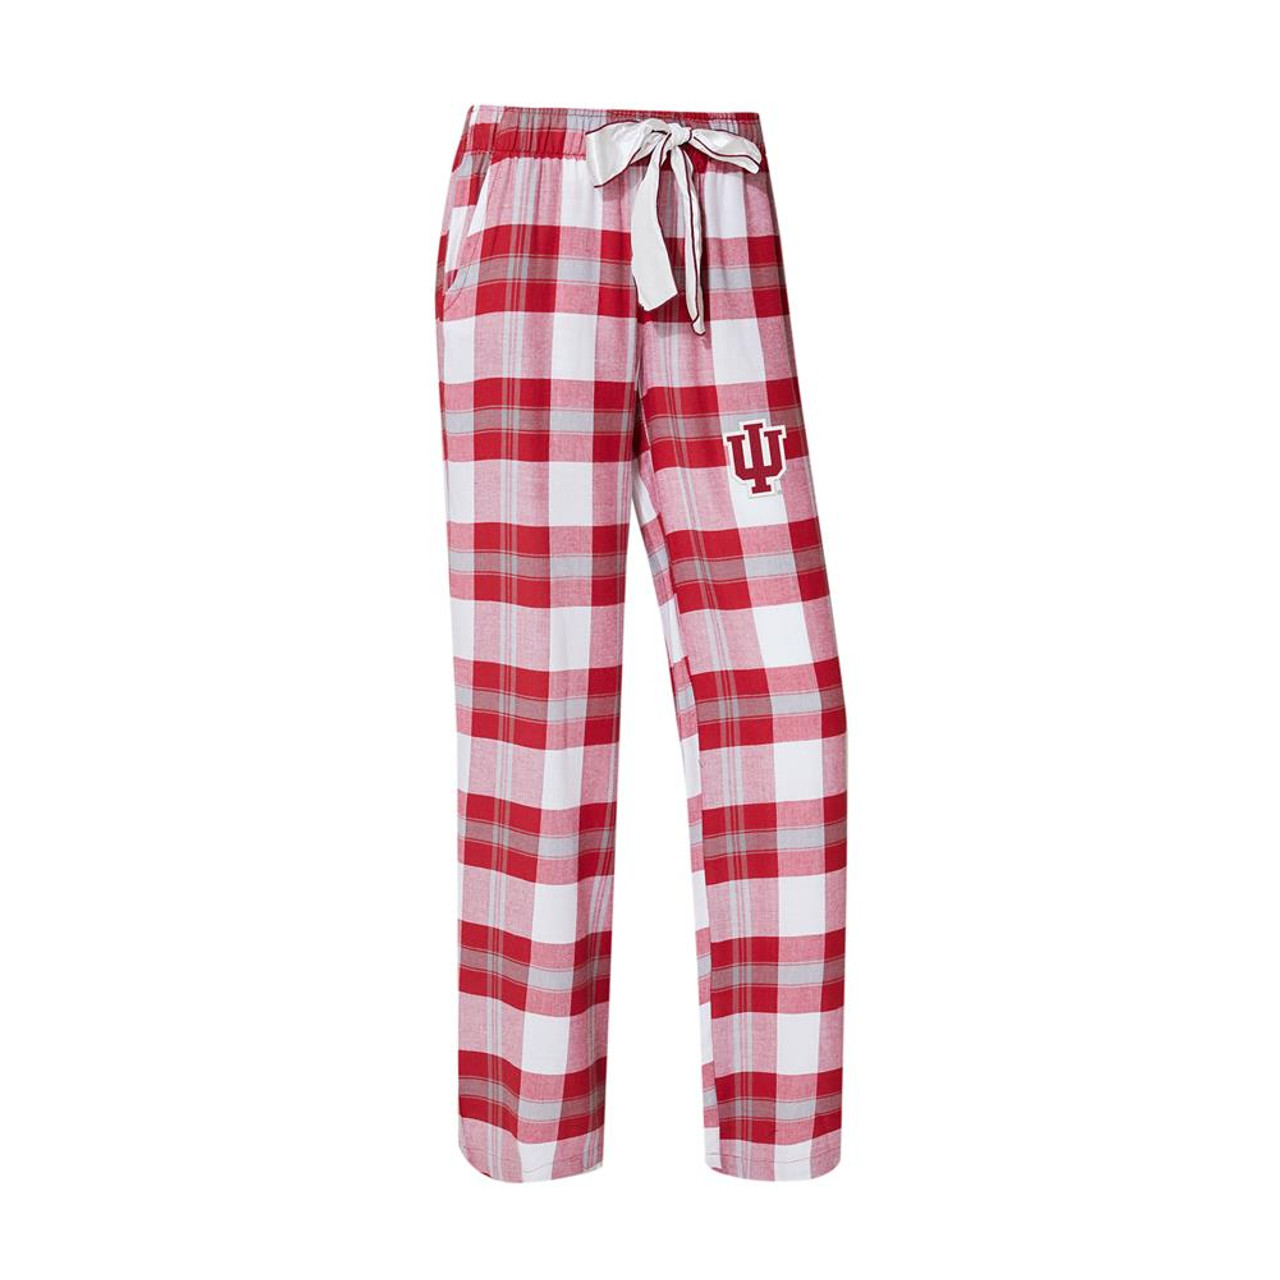 Indiana University Hoosiers Women's Flannel Pajamas Plaid PJ Bottoms